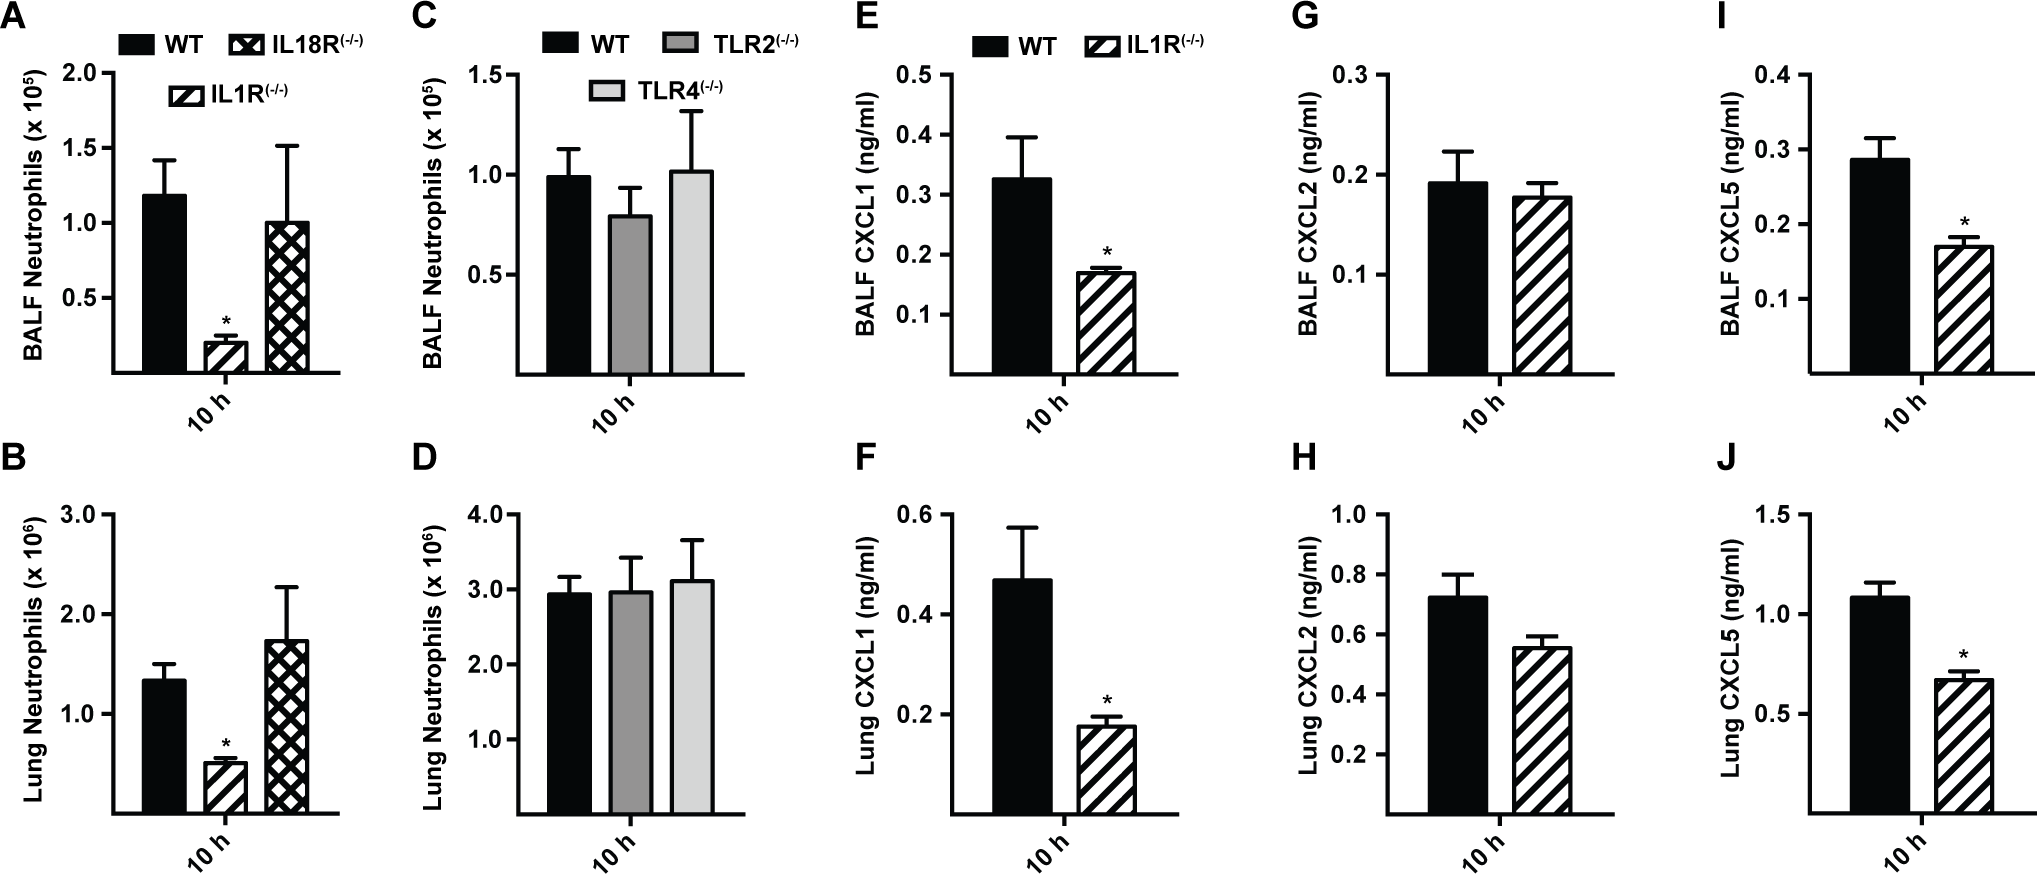 Interleukin-1 receptor signaling controls MyD88-dependent chemokine induction and neutrophil recruitment.